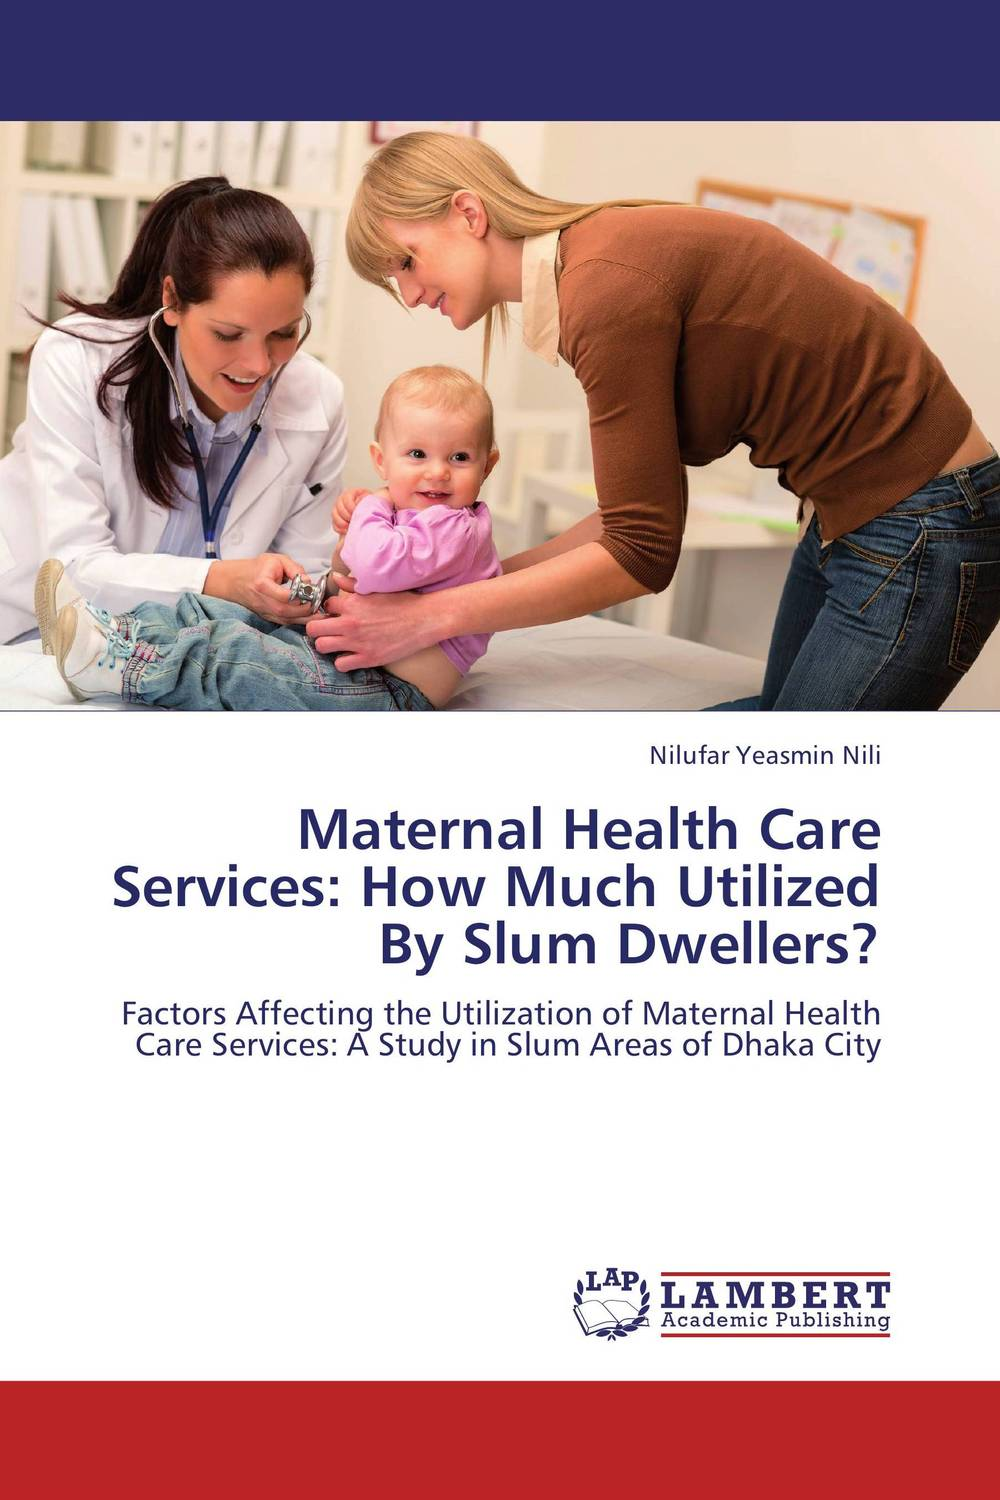 Maternal Health Care Services: How Much Utilized By Slum Dwellers?